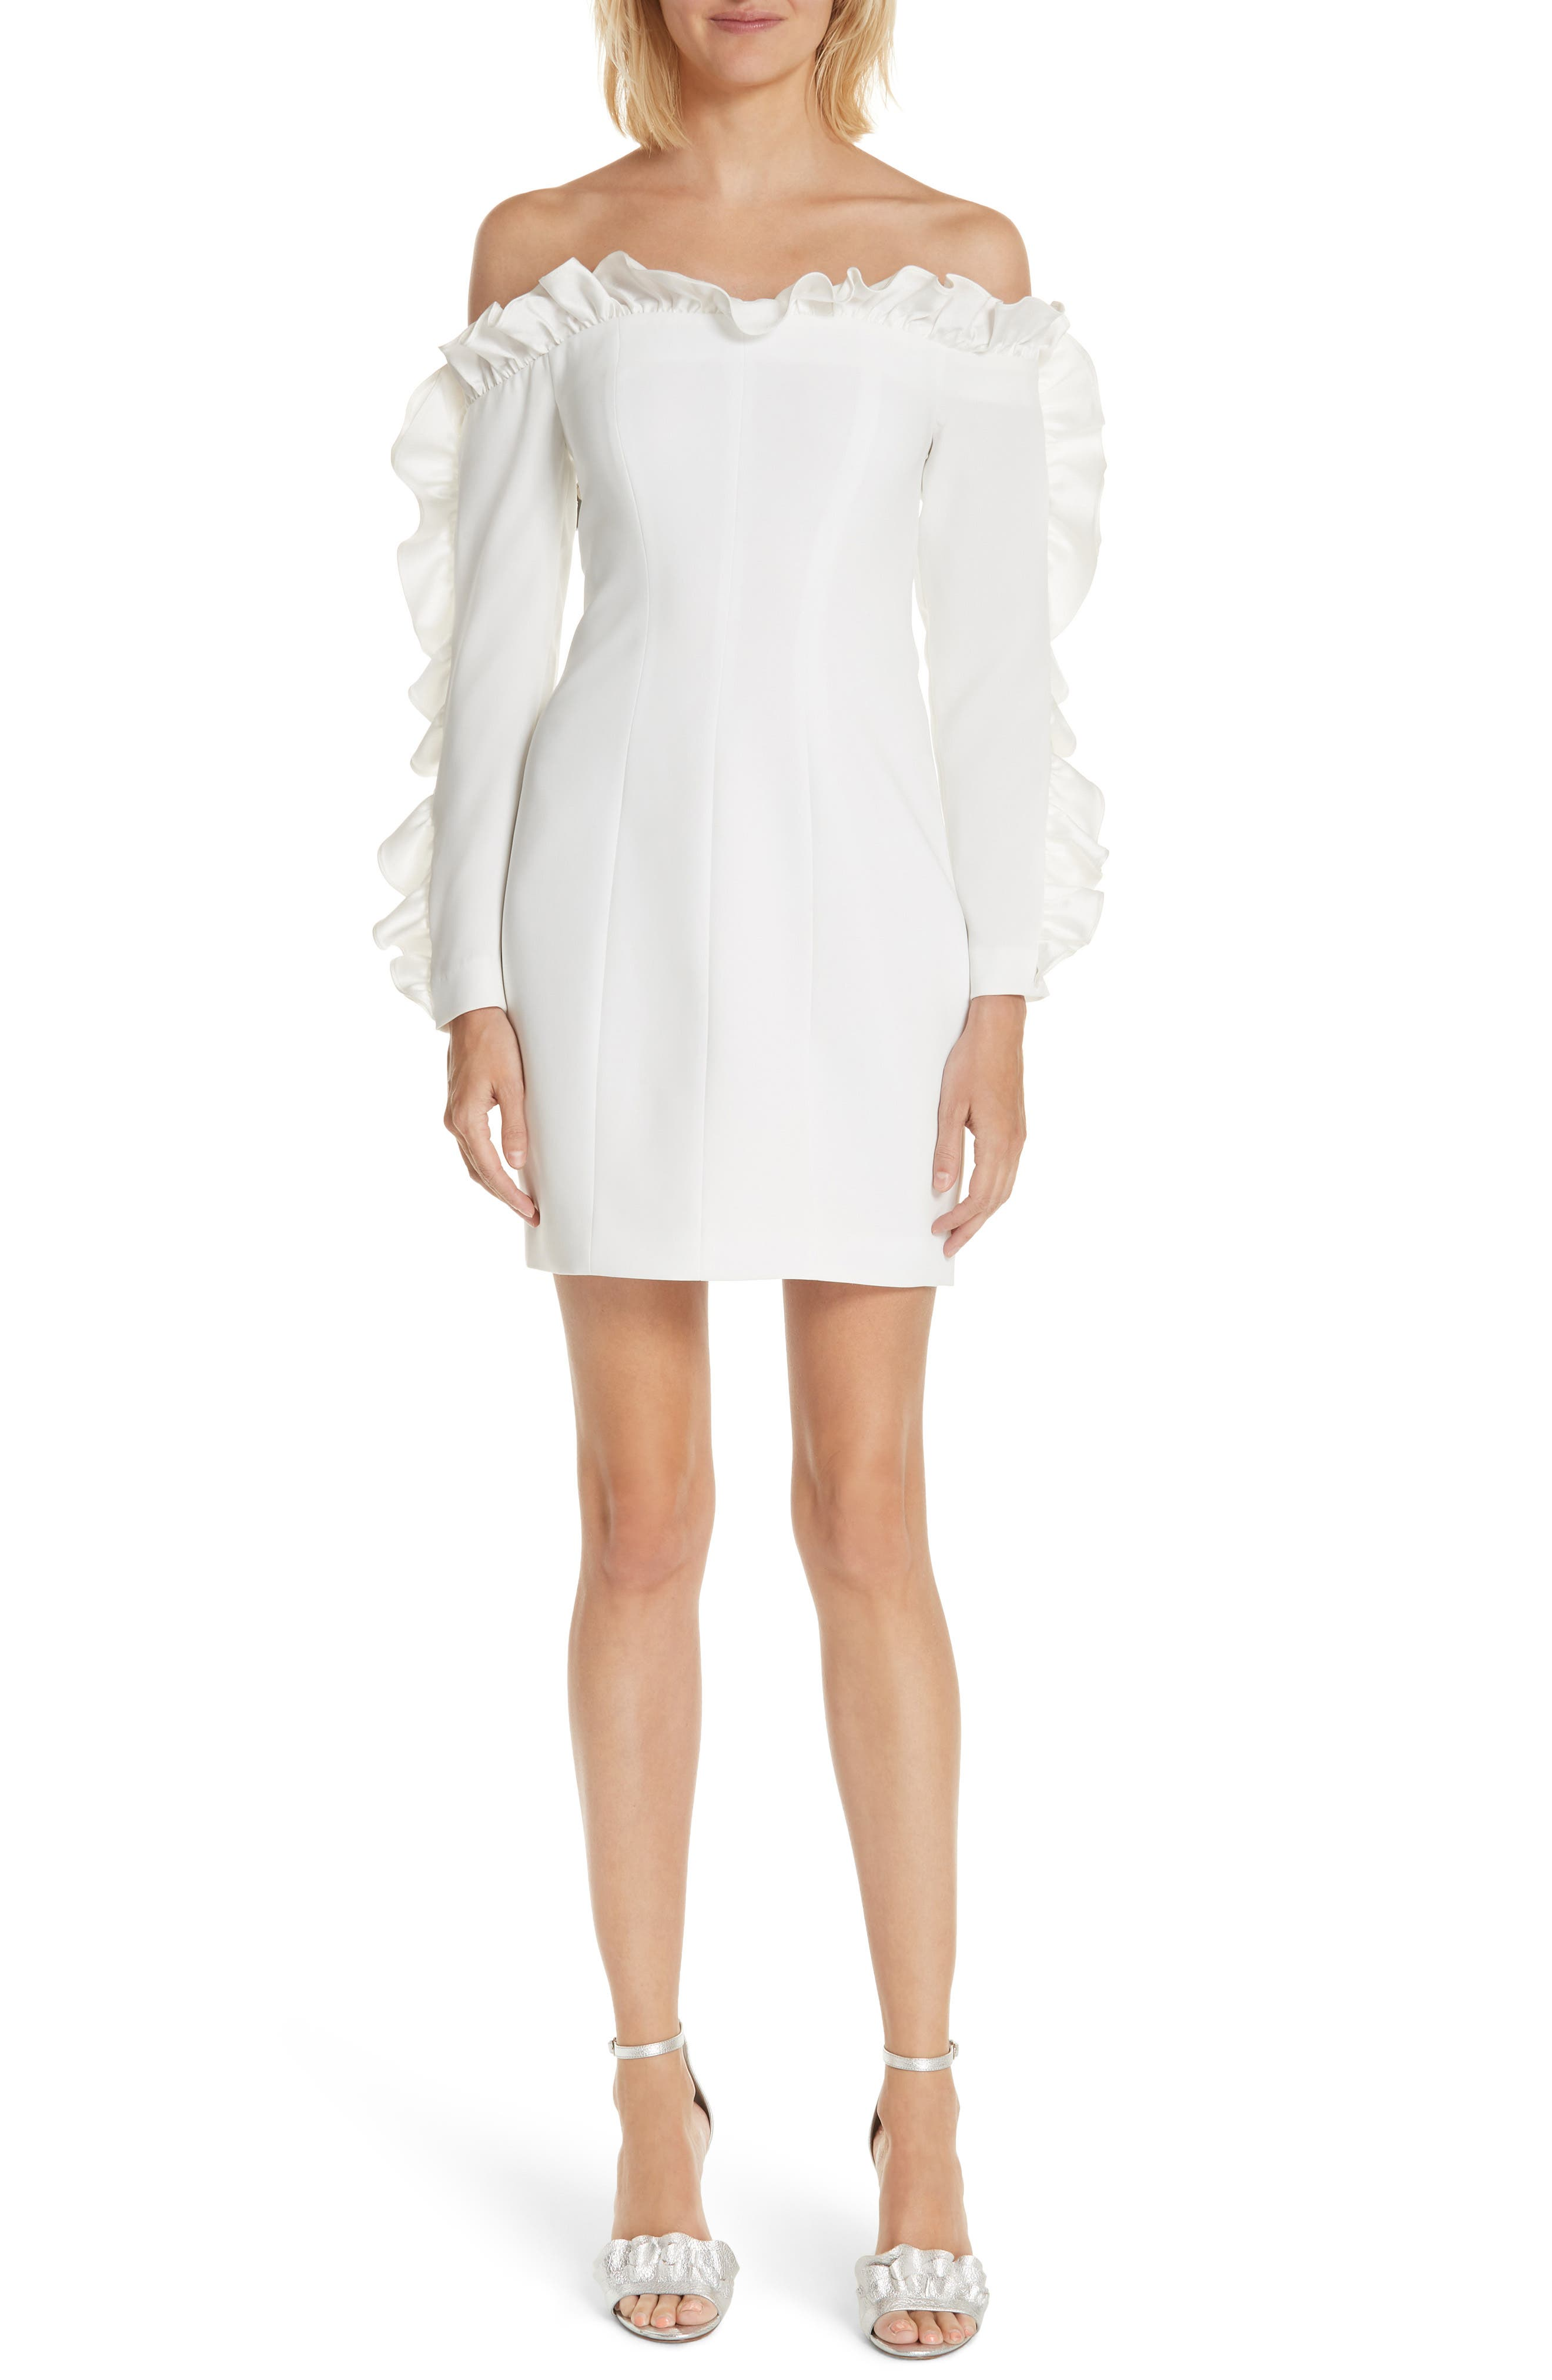 Rosemarie Ruffle Off the Shoulder Dress,                         Main,                         color, Ivory/ Ivory